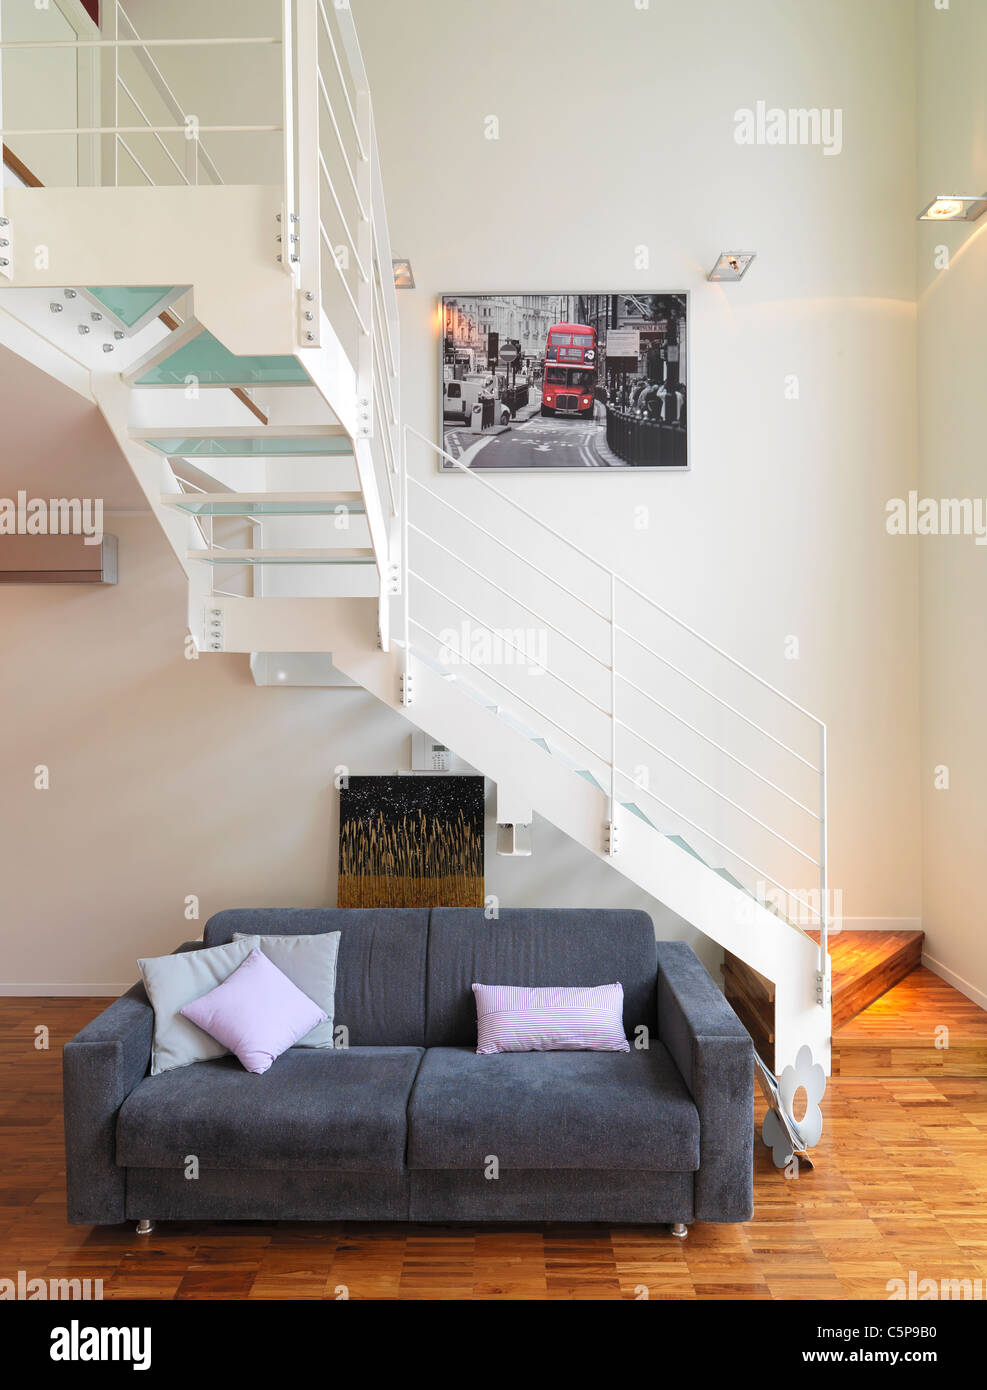 gray sofa near a staircase with wood floor in the living room - Stock Image